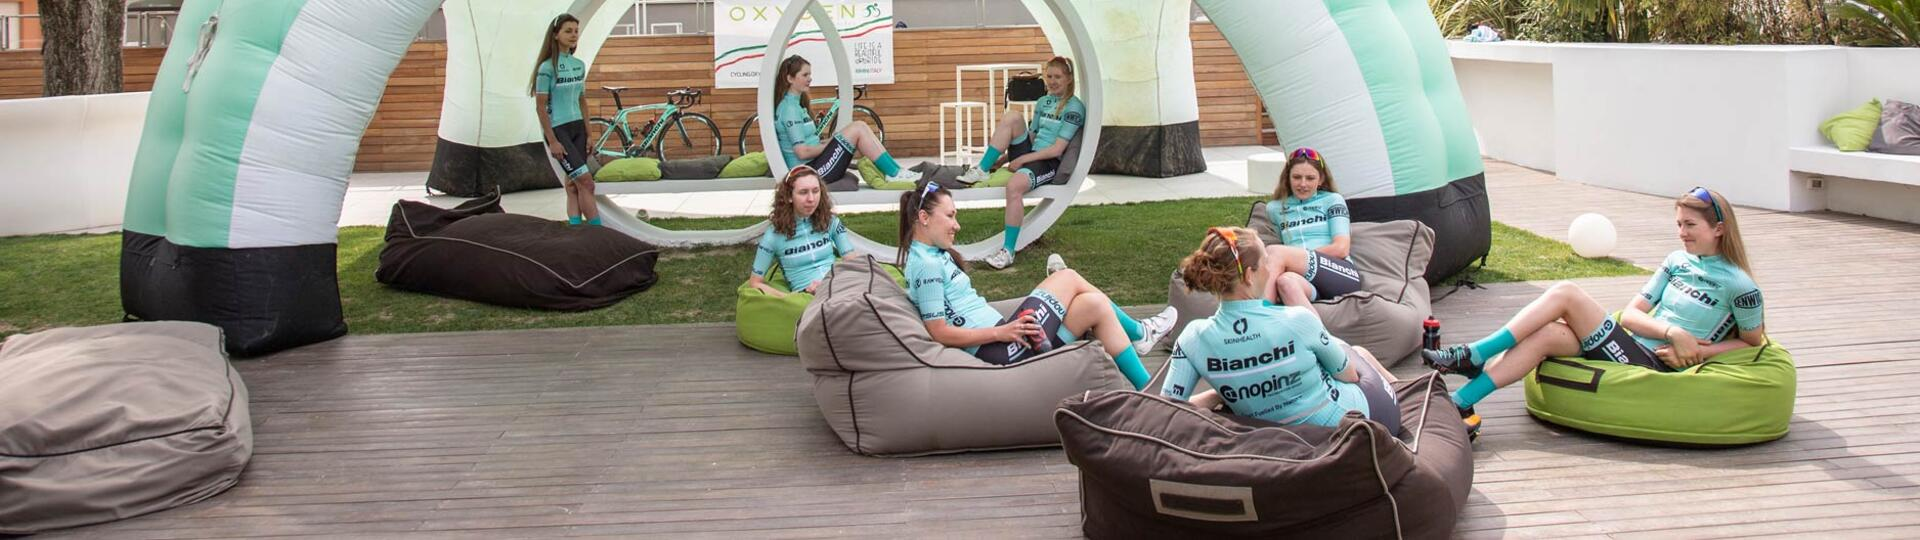 cycling.oxygenhotel it road-bike-mini-giro-d-italia-5-giorni-5-regioni 014